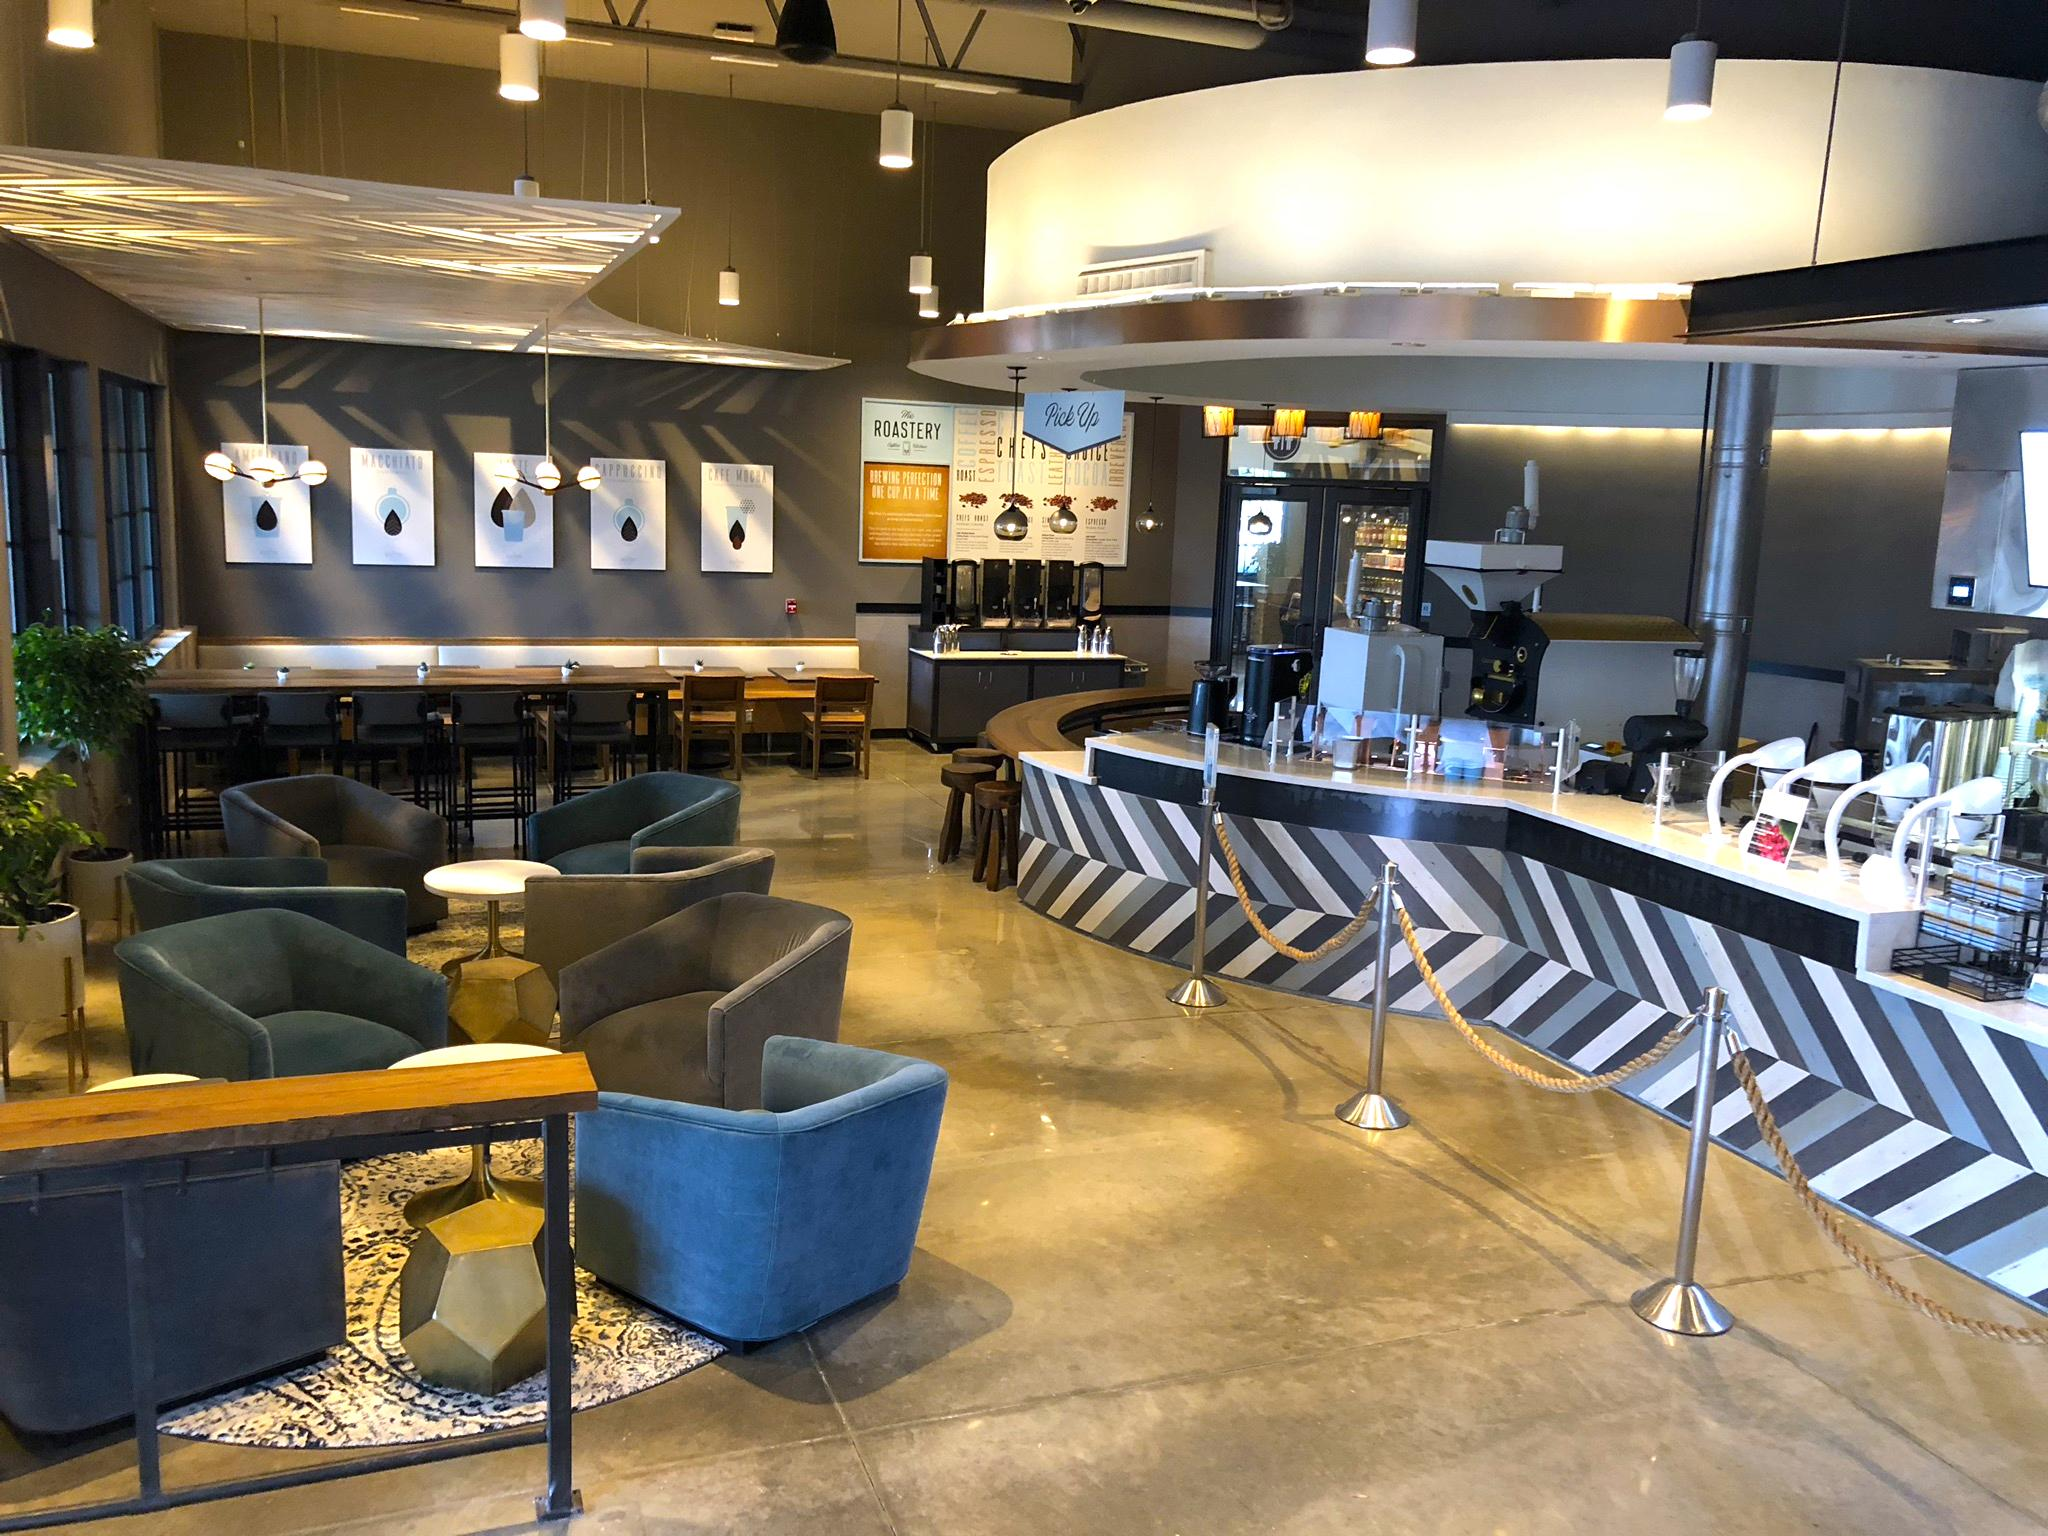 The roastery coffee kitchen opens flagship location attached to san felipe h e b houston chronicle